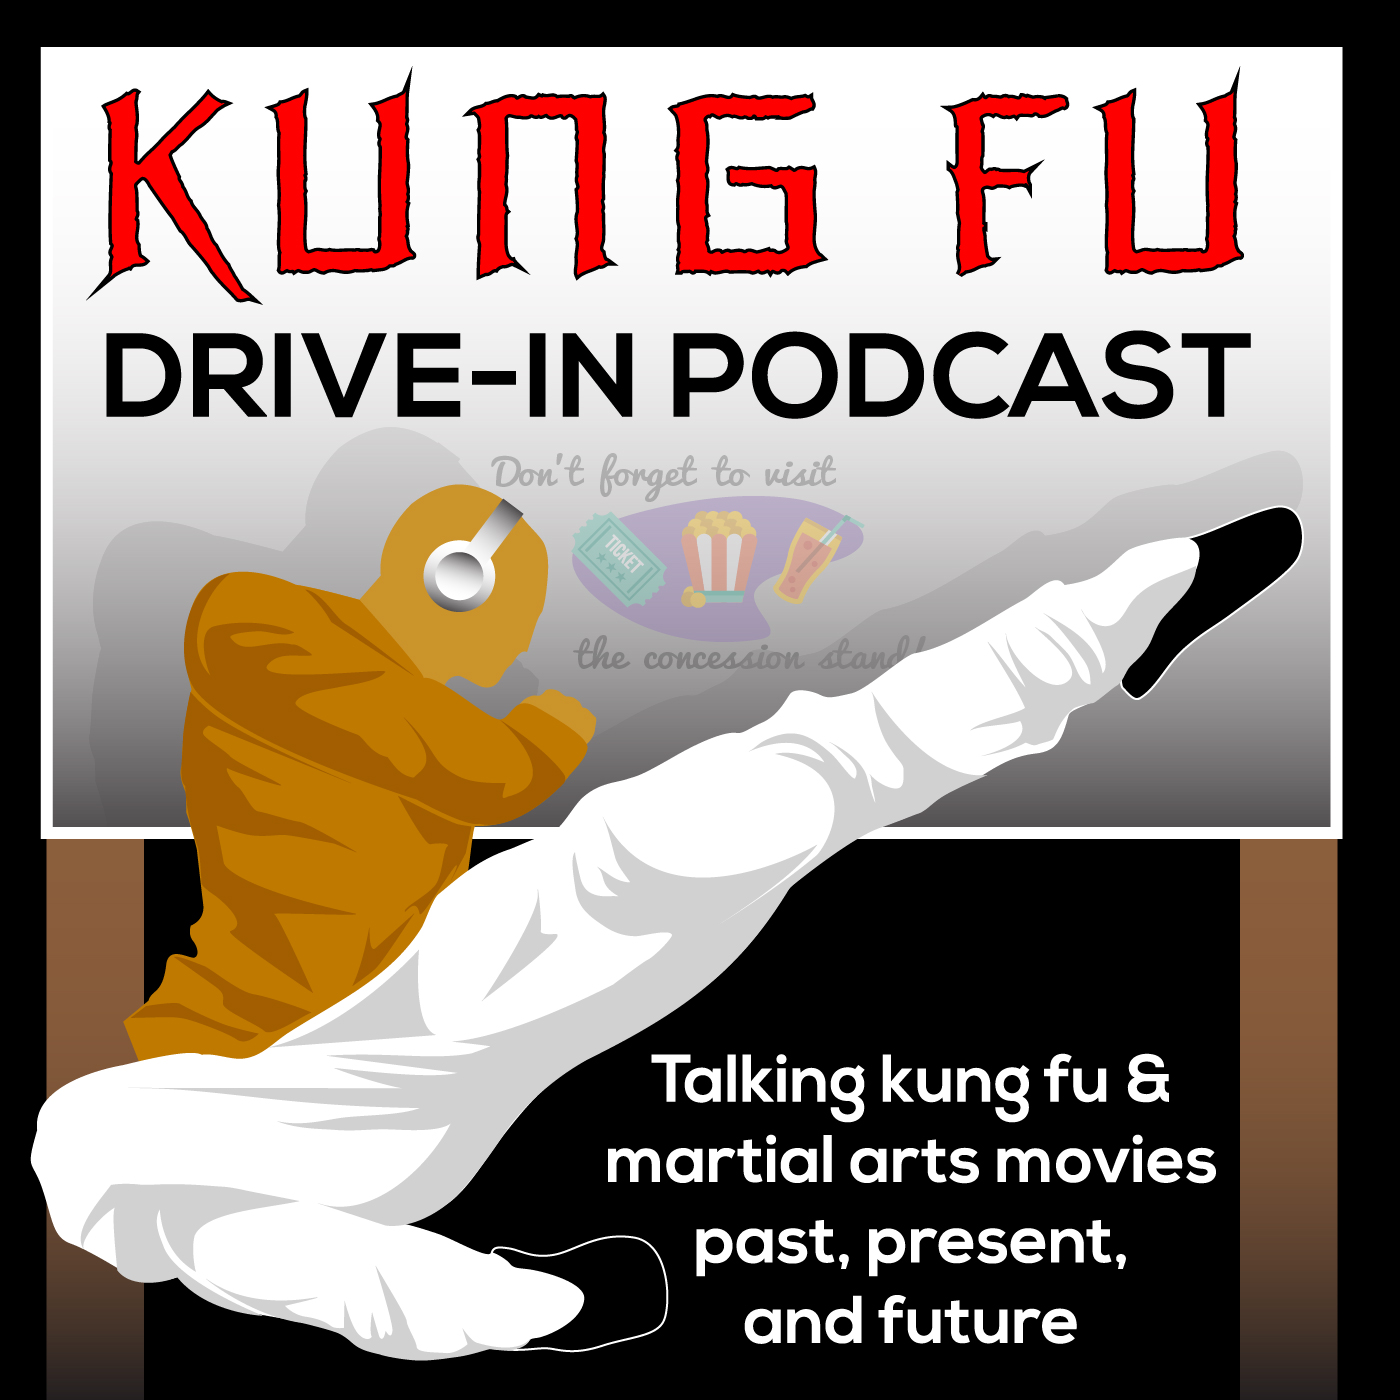 KungFu DriveIn Podcast